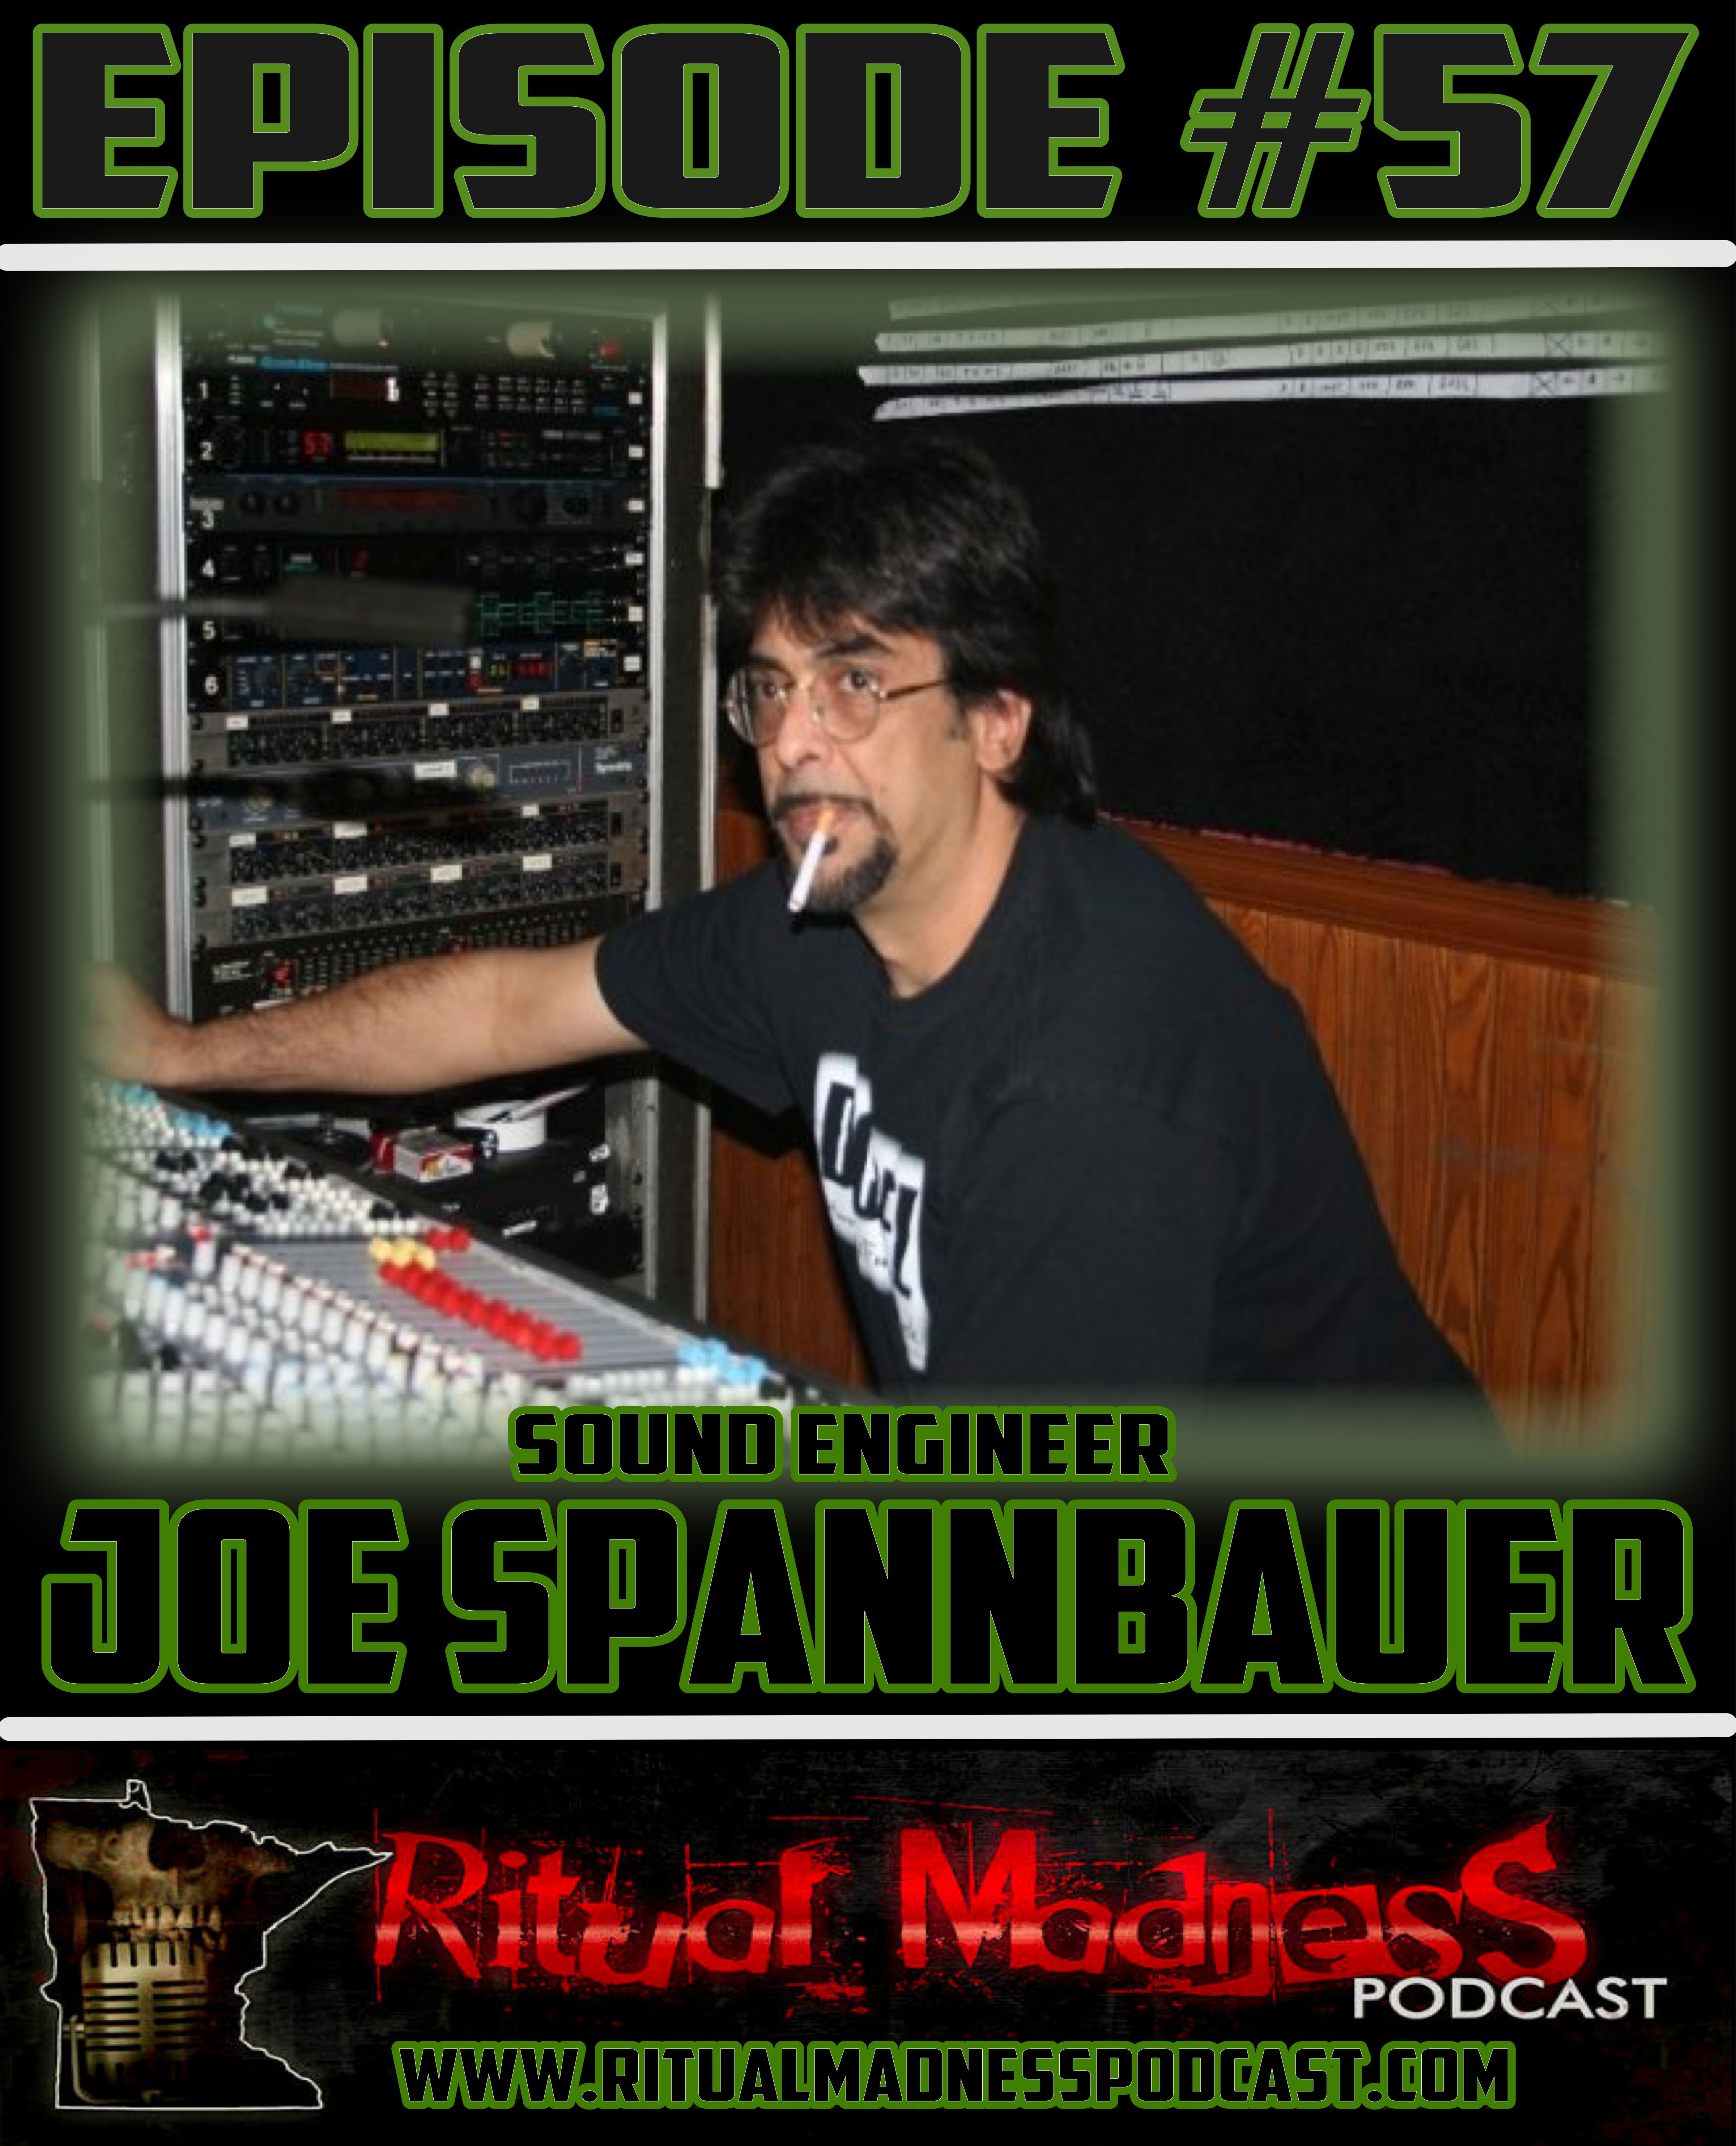 Episode 57 Sound Engineer Joe Spannbauer Ritual Madness Podcast